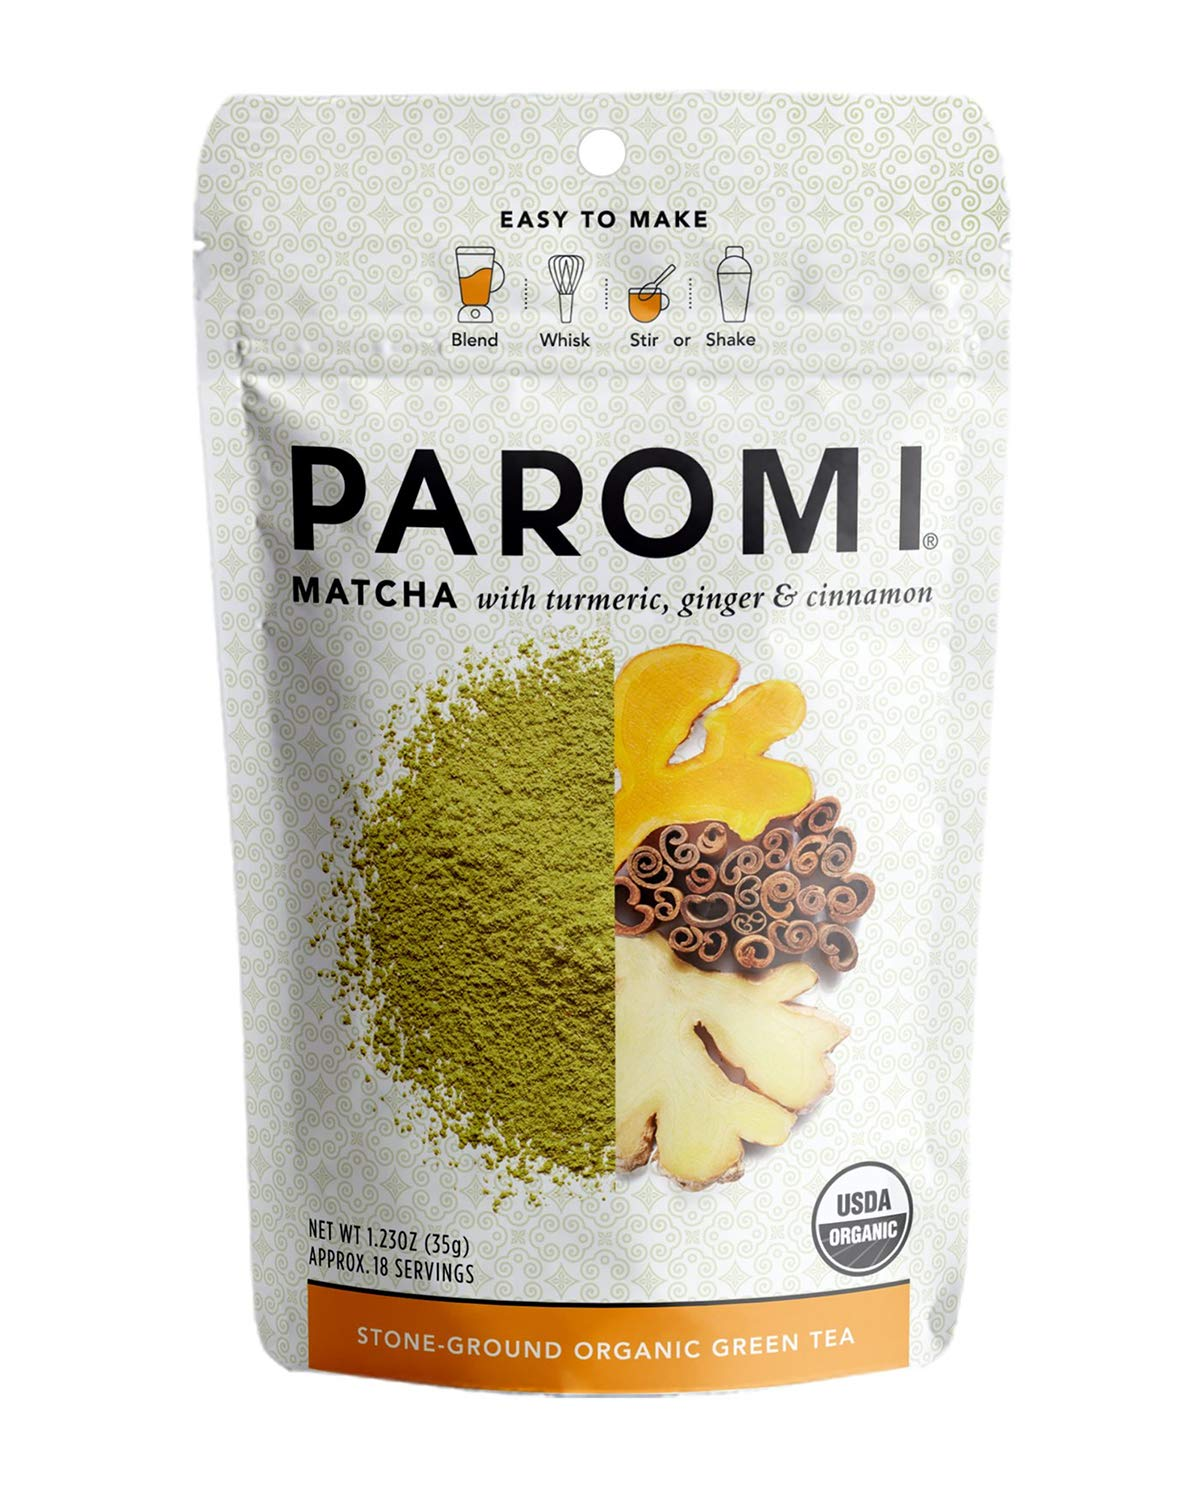 Paromi Tea Matcha with Turmeric, Ginger & Cinnamon 1.23 Oz, Organic Stone-Ground Organic Green Tea, Serve Hot or Iced, Blend, Whisk, Stir, or Shake into Water or Milk